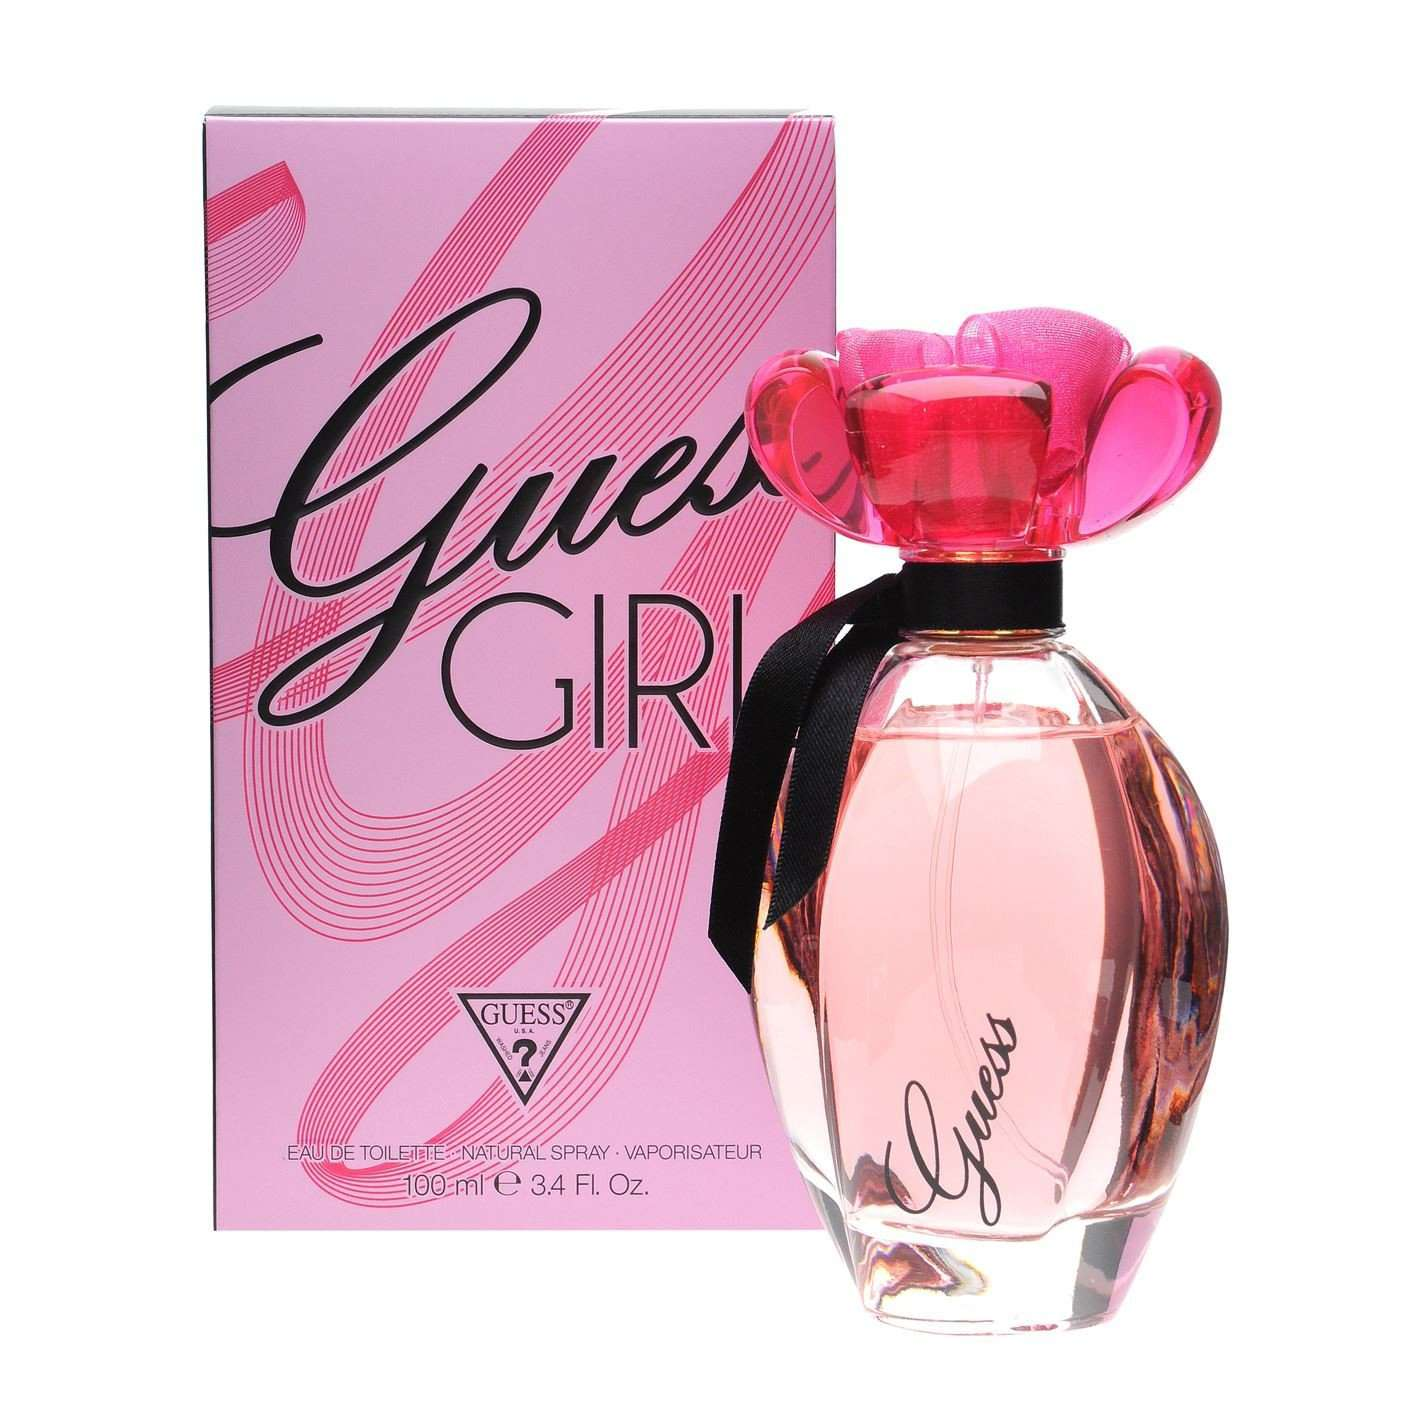 Guess Girl 100ml | Perfume Philippines | Perfume Philippines